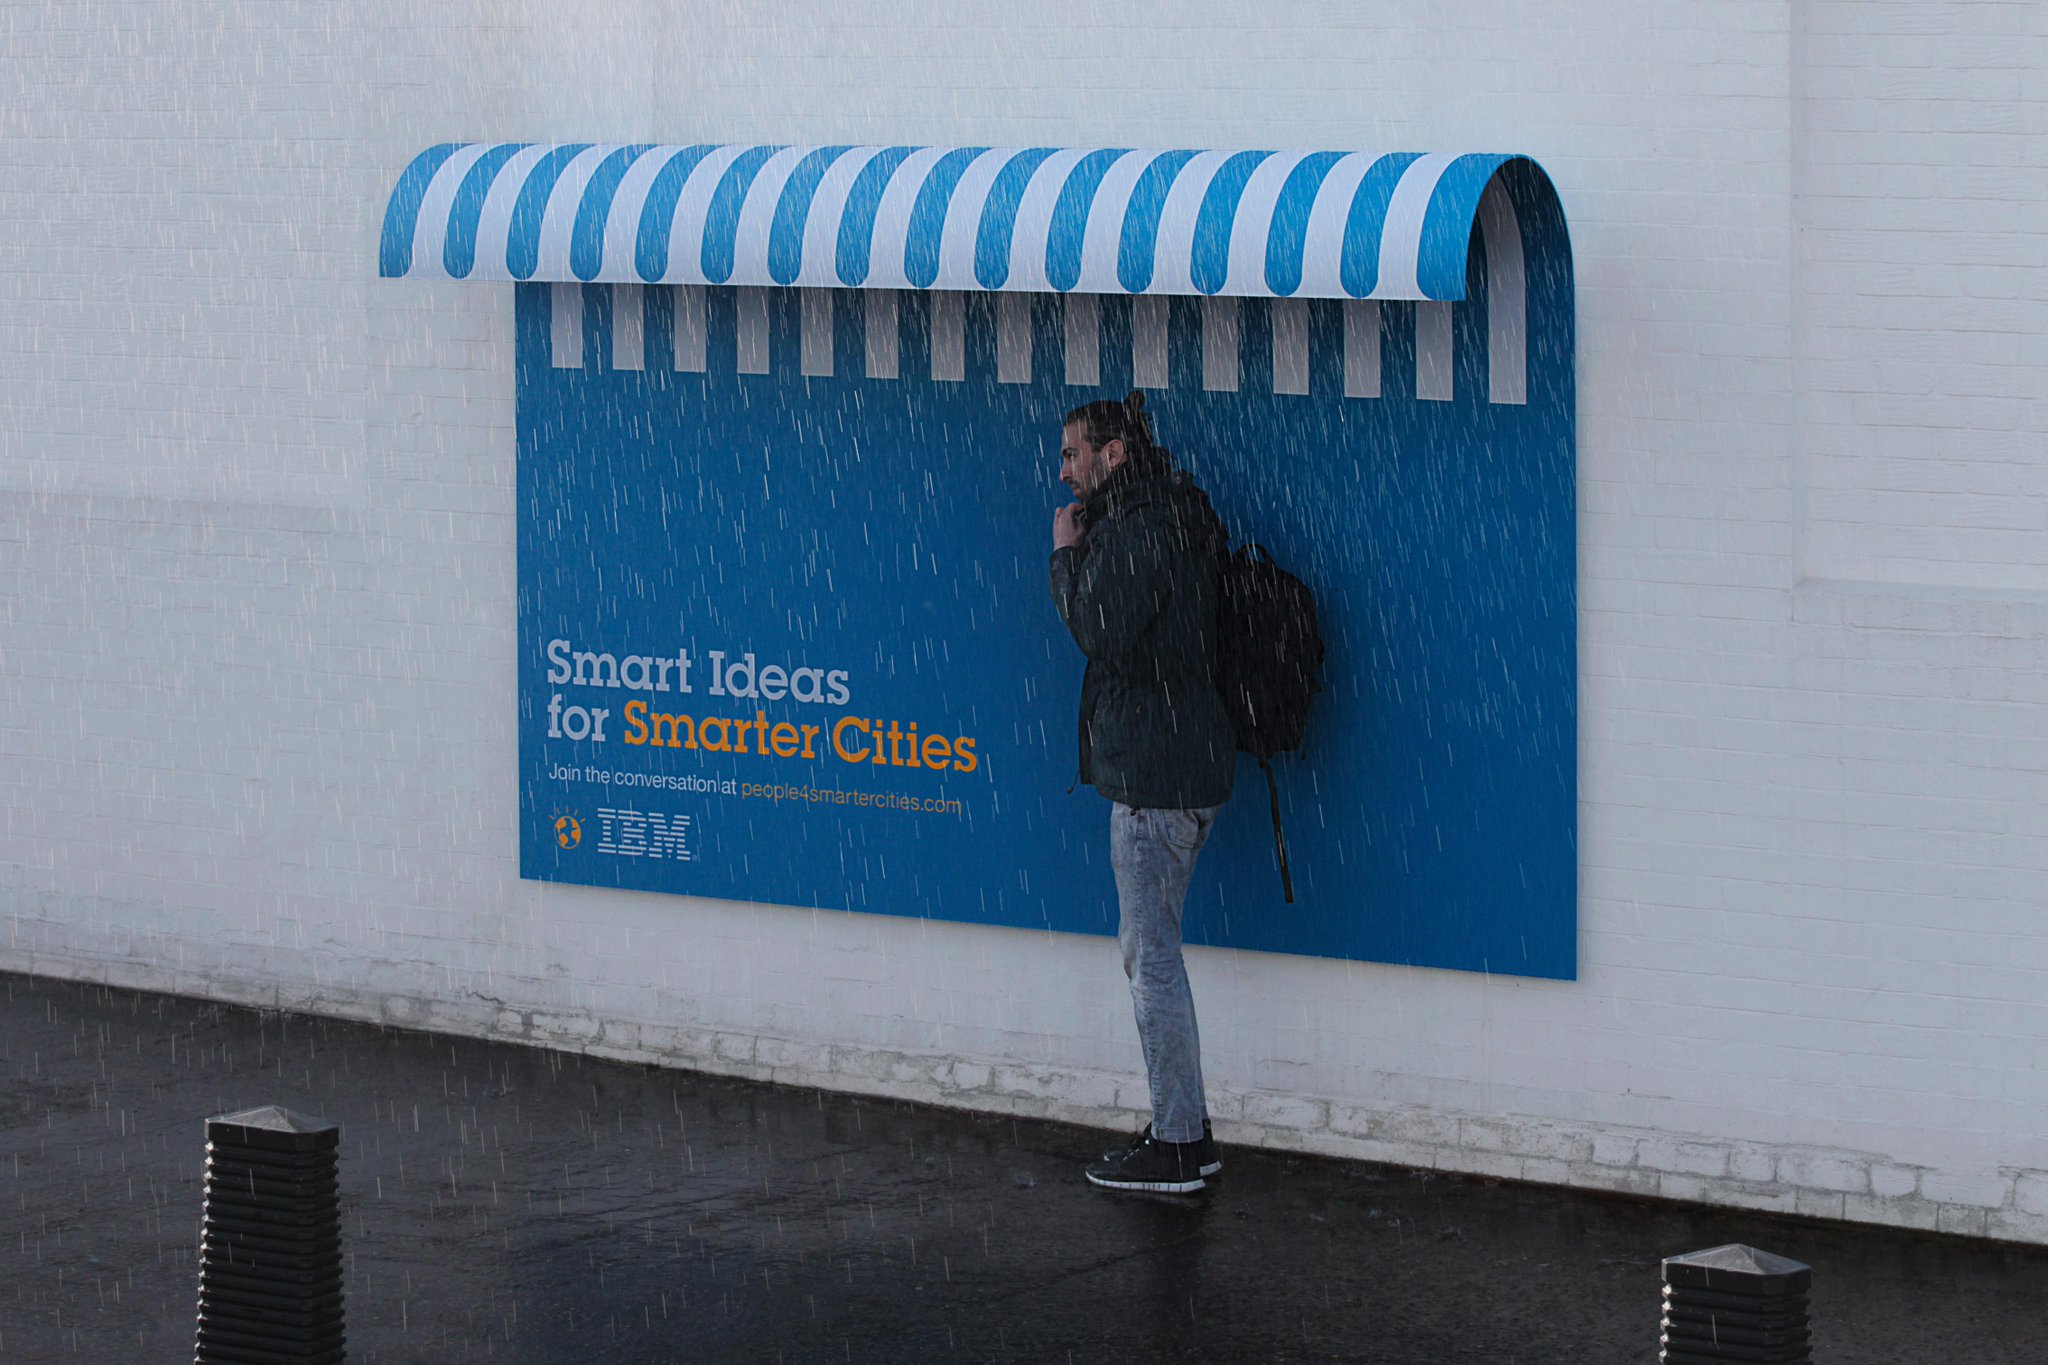 RT @ThamKhaiMeng: They've made it in the Guinness Book of World Records for Smartest Posters in a city... again. @28inmyhead http://t.co/n0…